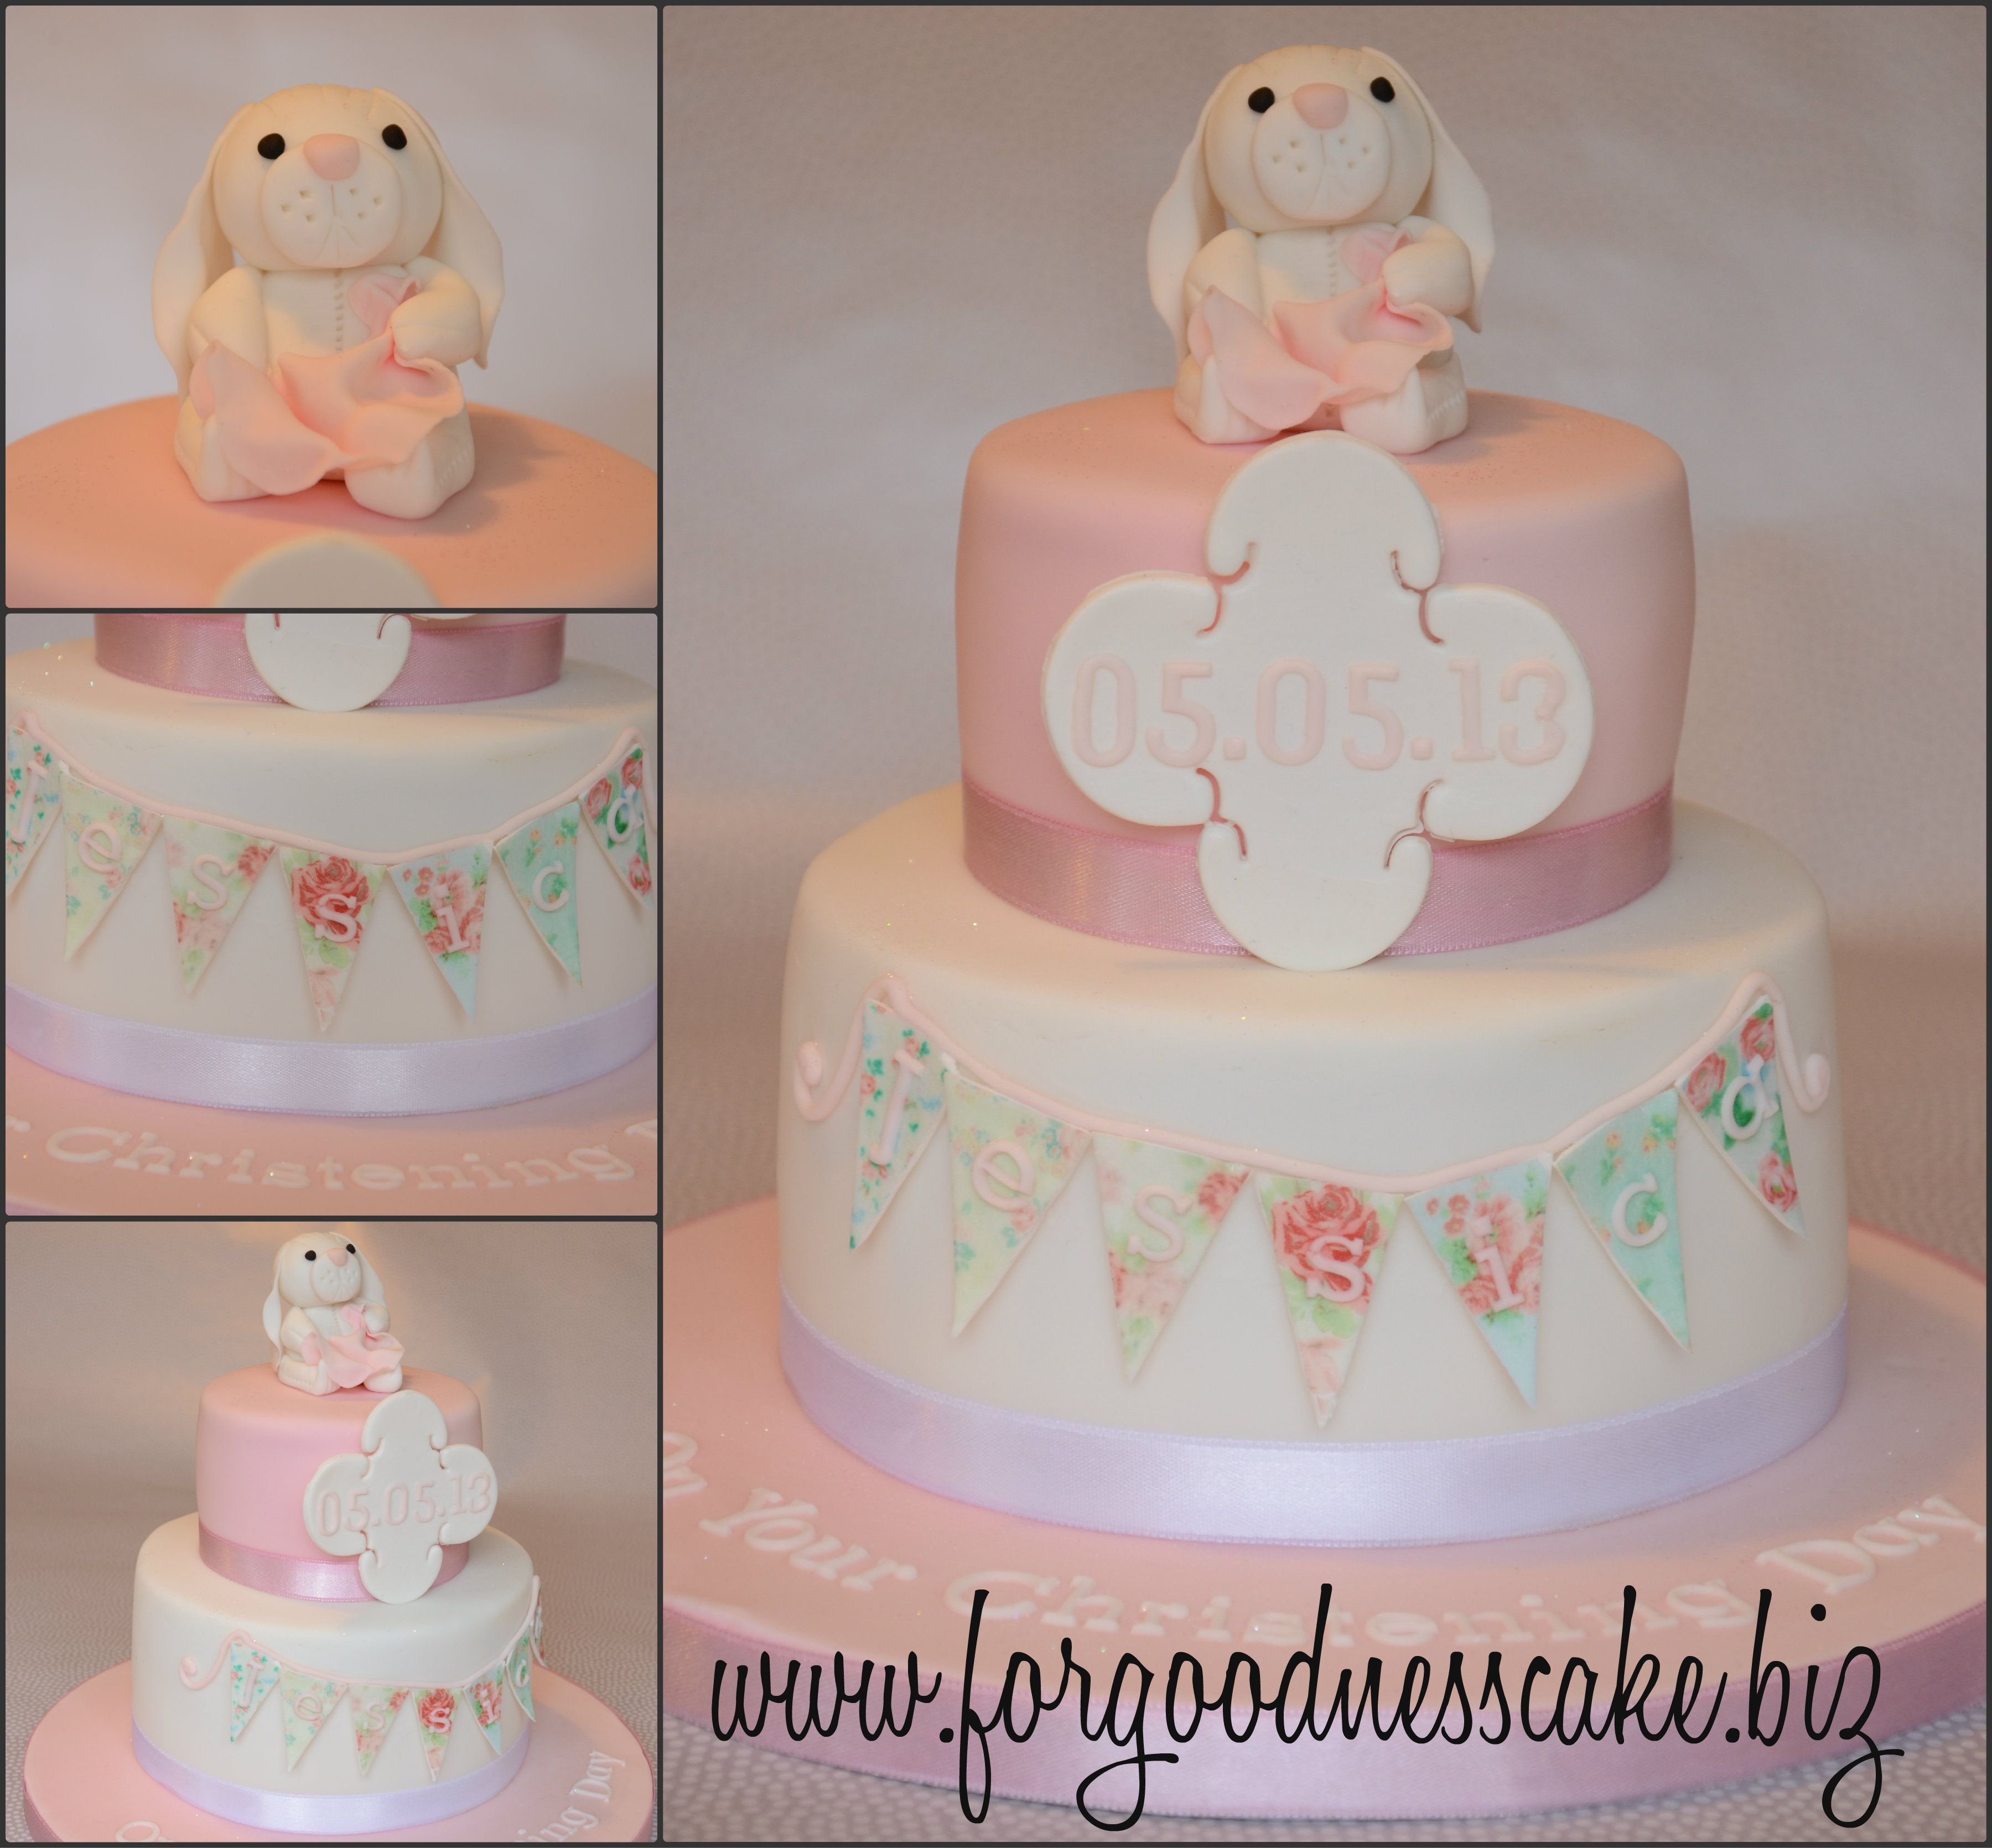 Baby girl baptism cake ideas 15979 baby girl christening c - Baby baptism cake ideas ...